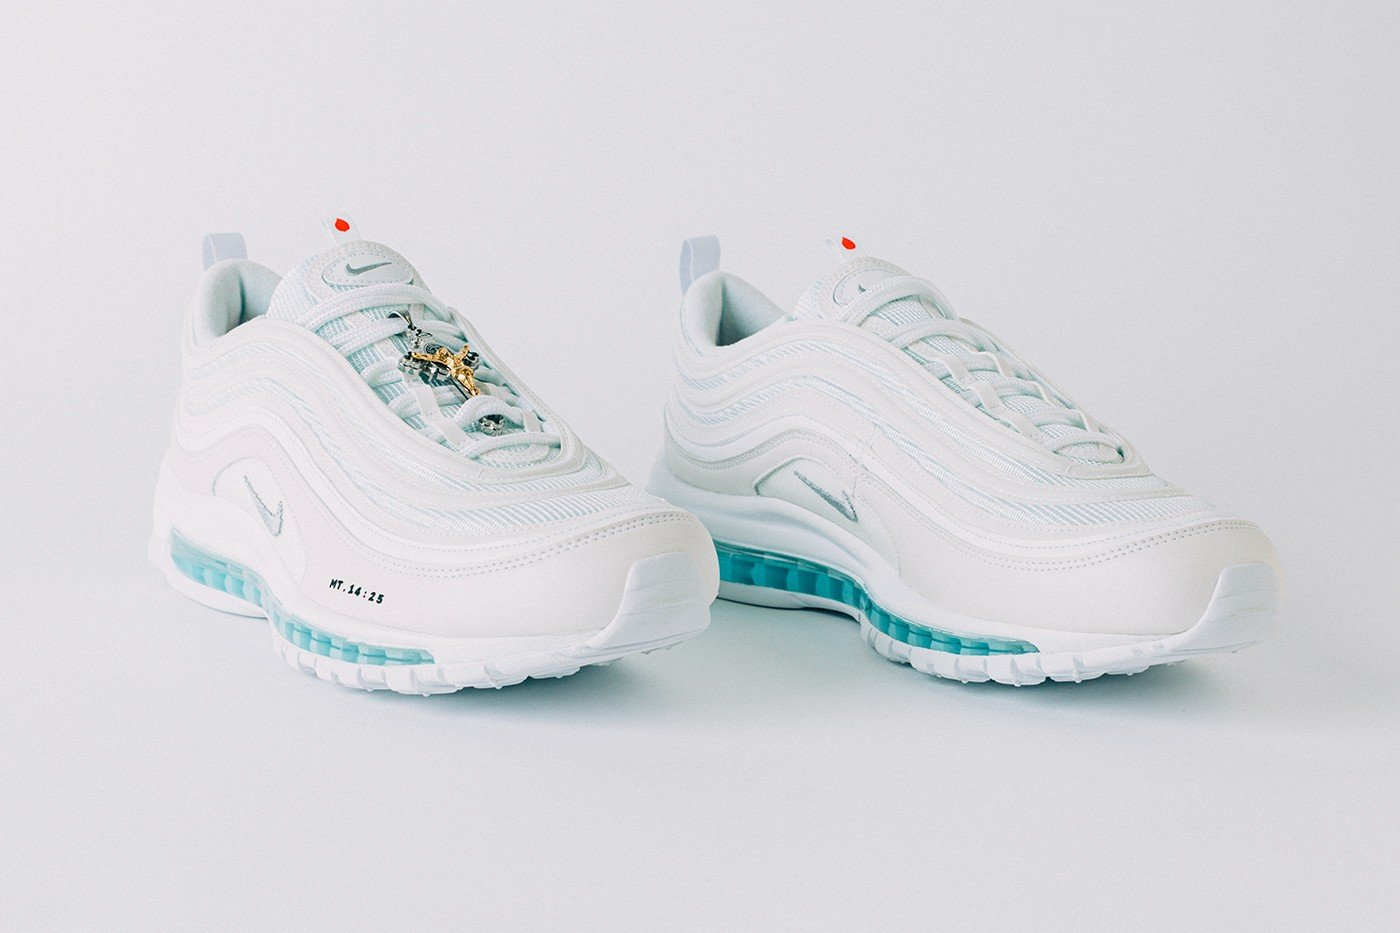 Costing $3,000 these Nike Air Max 97s are injected with holy water